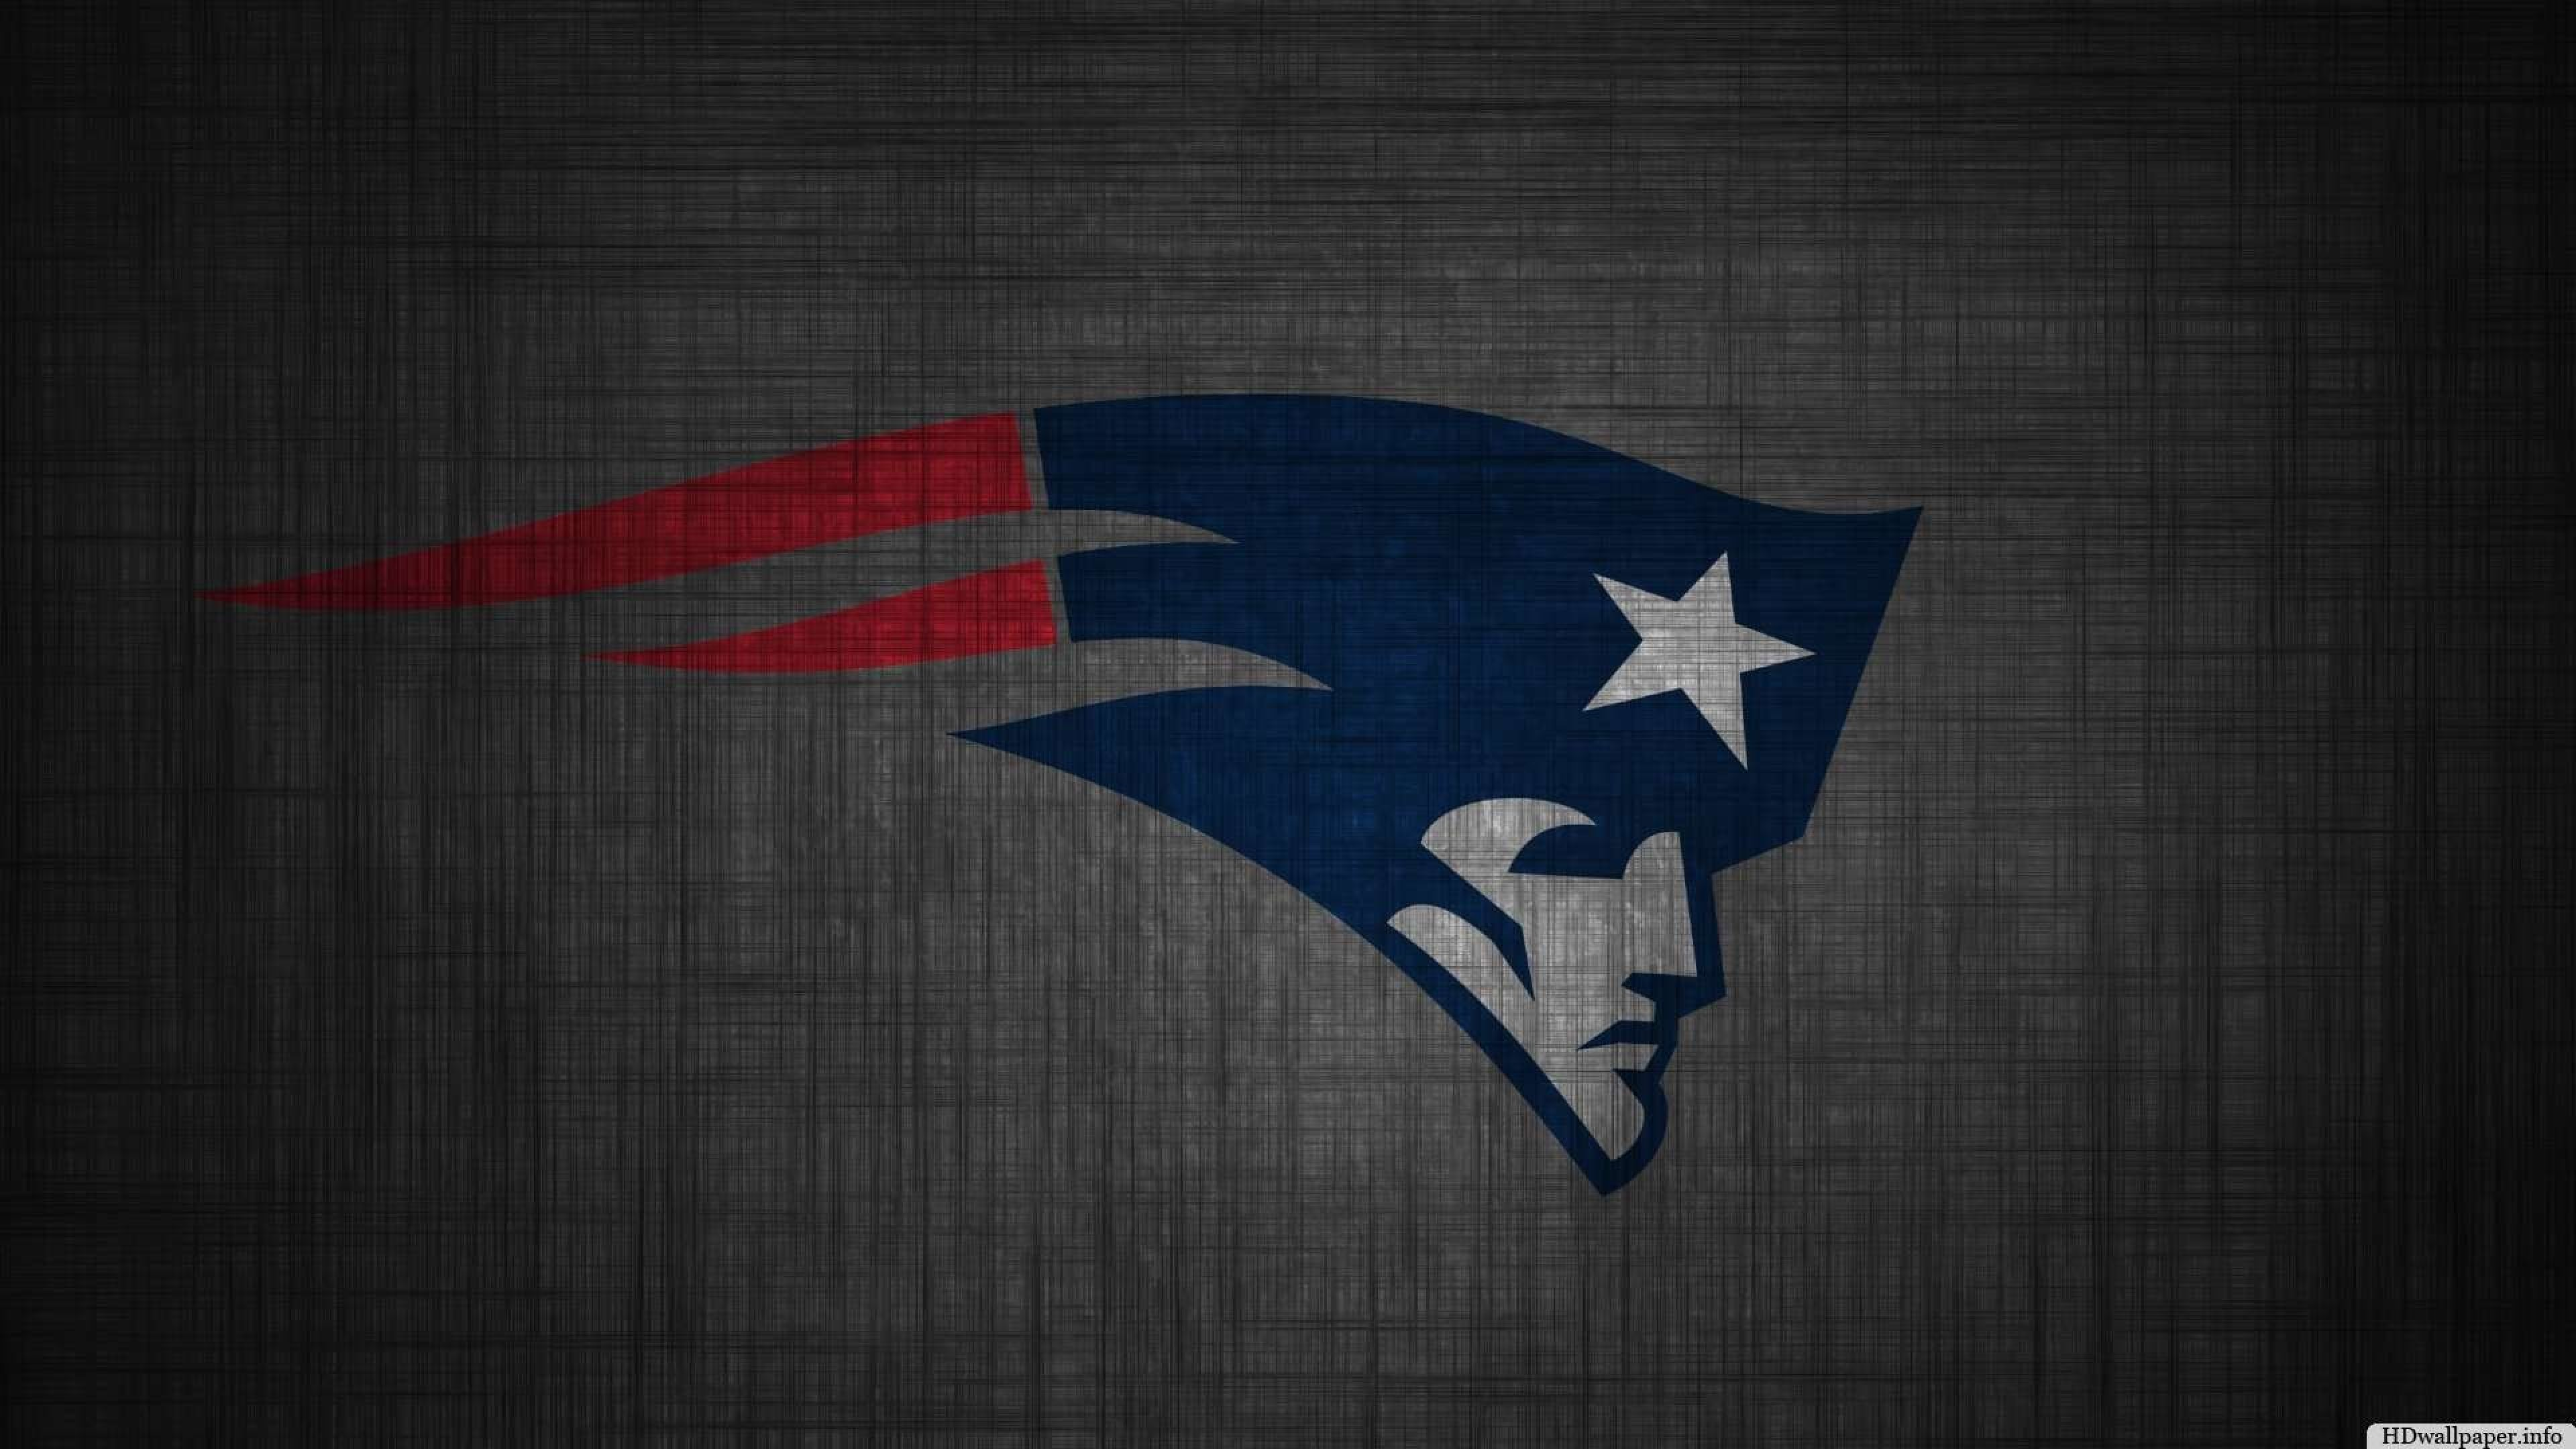 New england patriots wallpaper hd 74 images 3840x2160 new england patriots hd wallpaper voltagebd Images